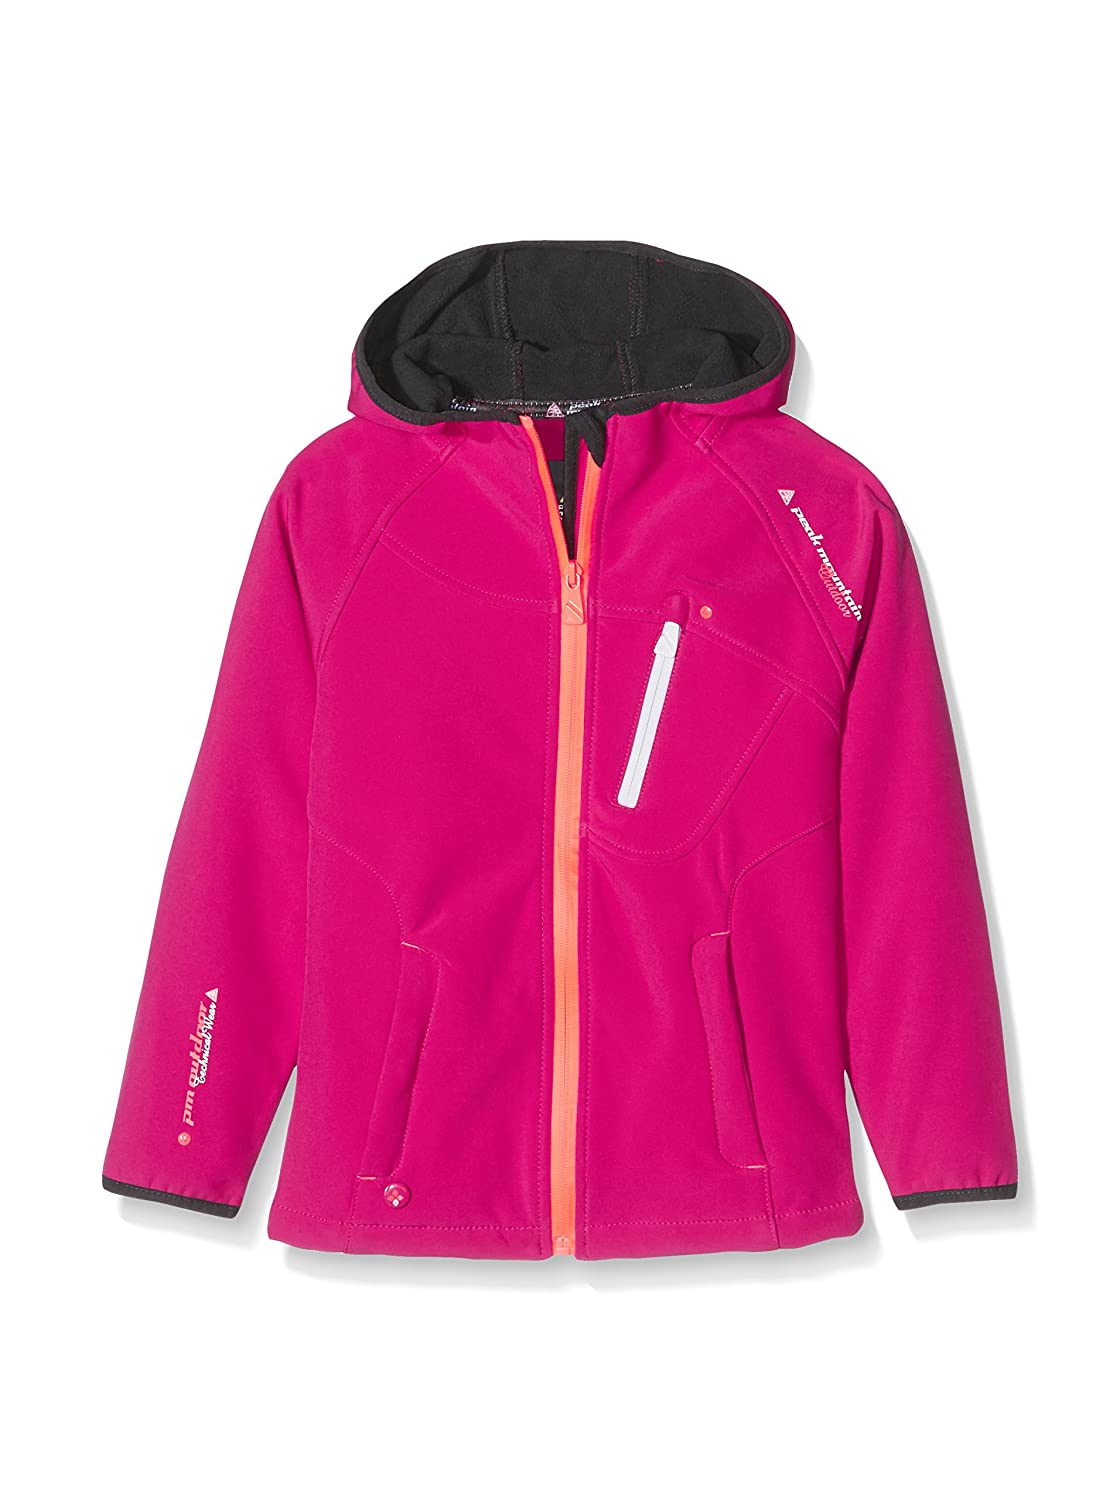 Fuchsia FR   L  Peak Mountain Fanso KS - Blouson - Fille